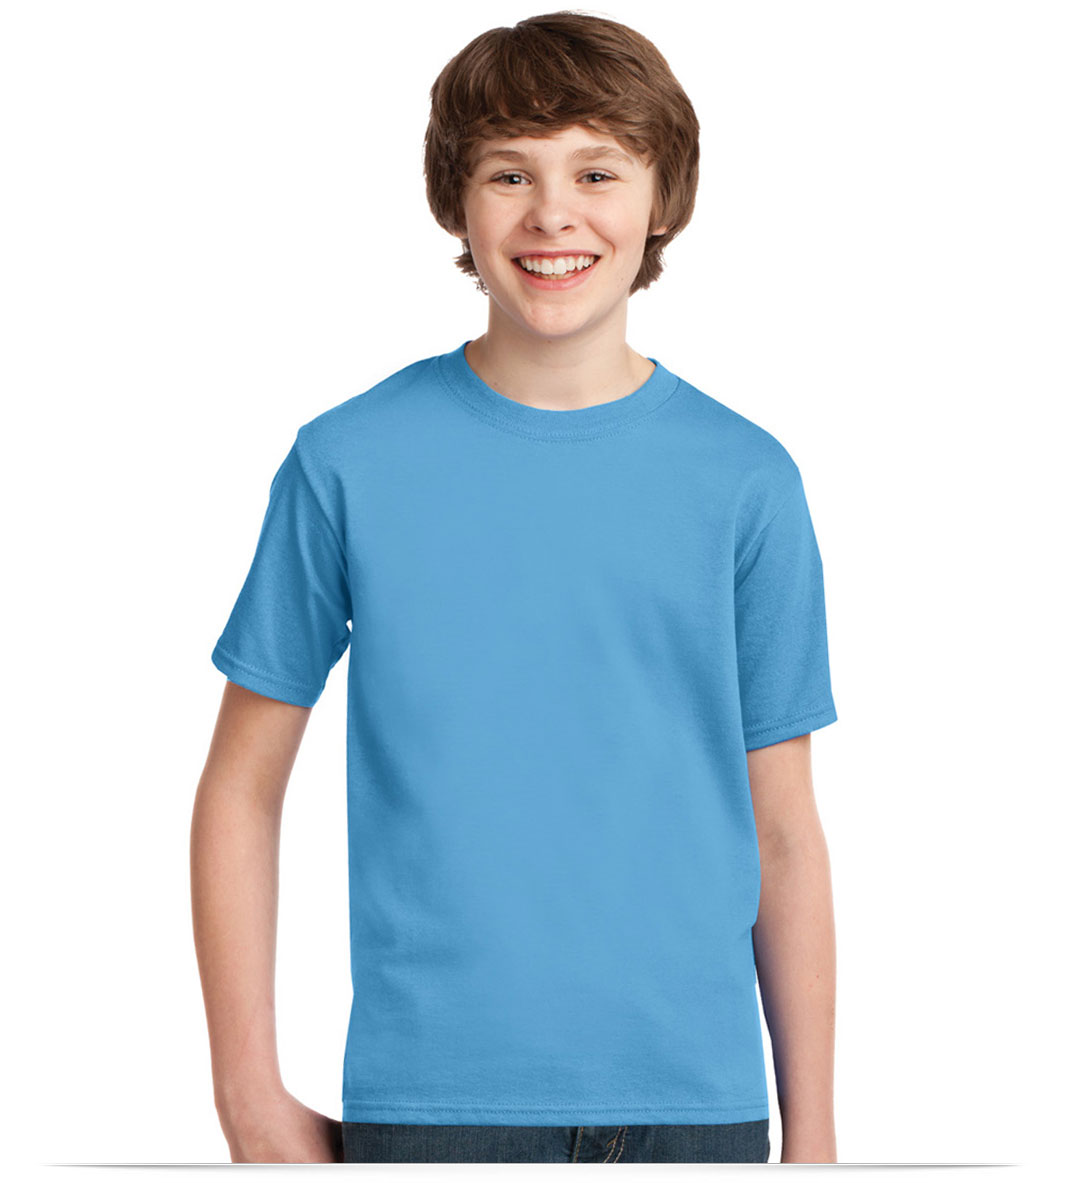 Personalized Kid's T-Shirt 100% Cotton